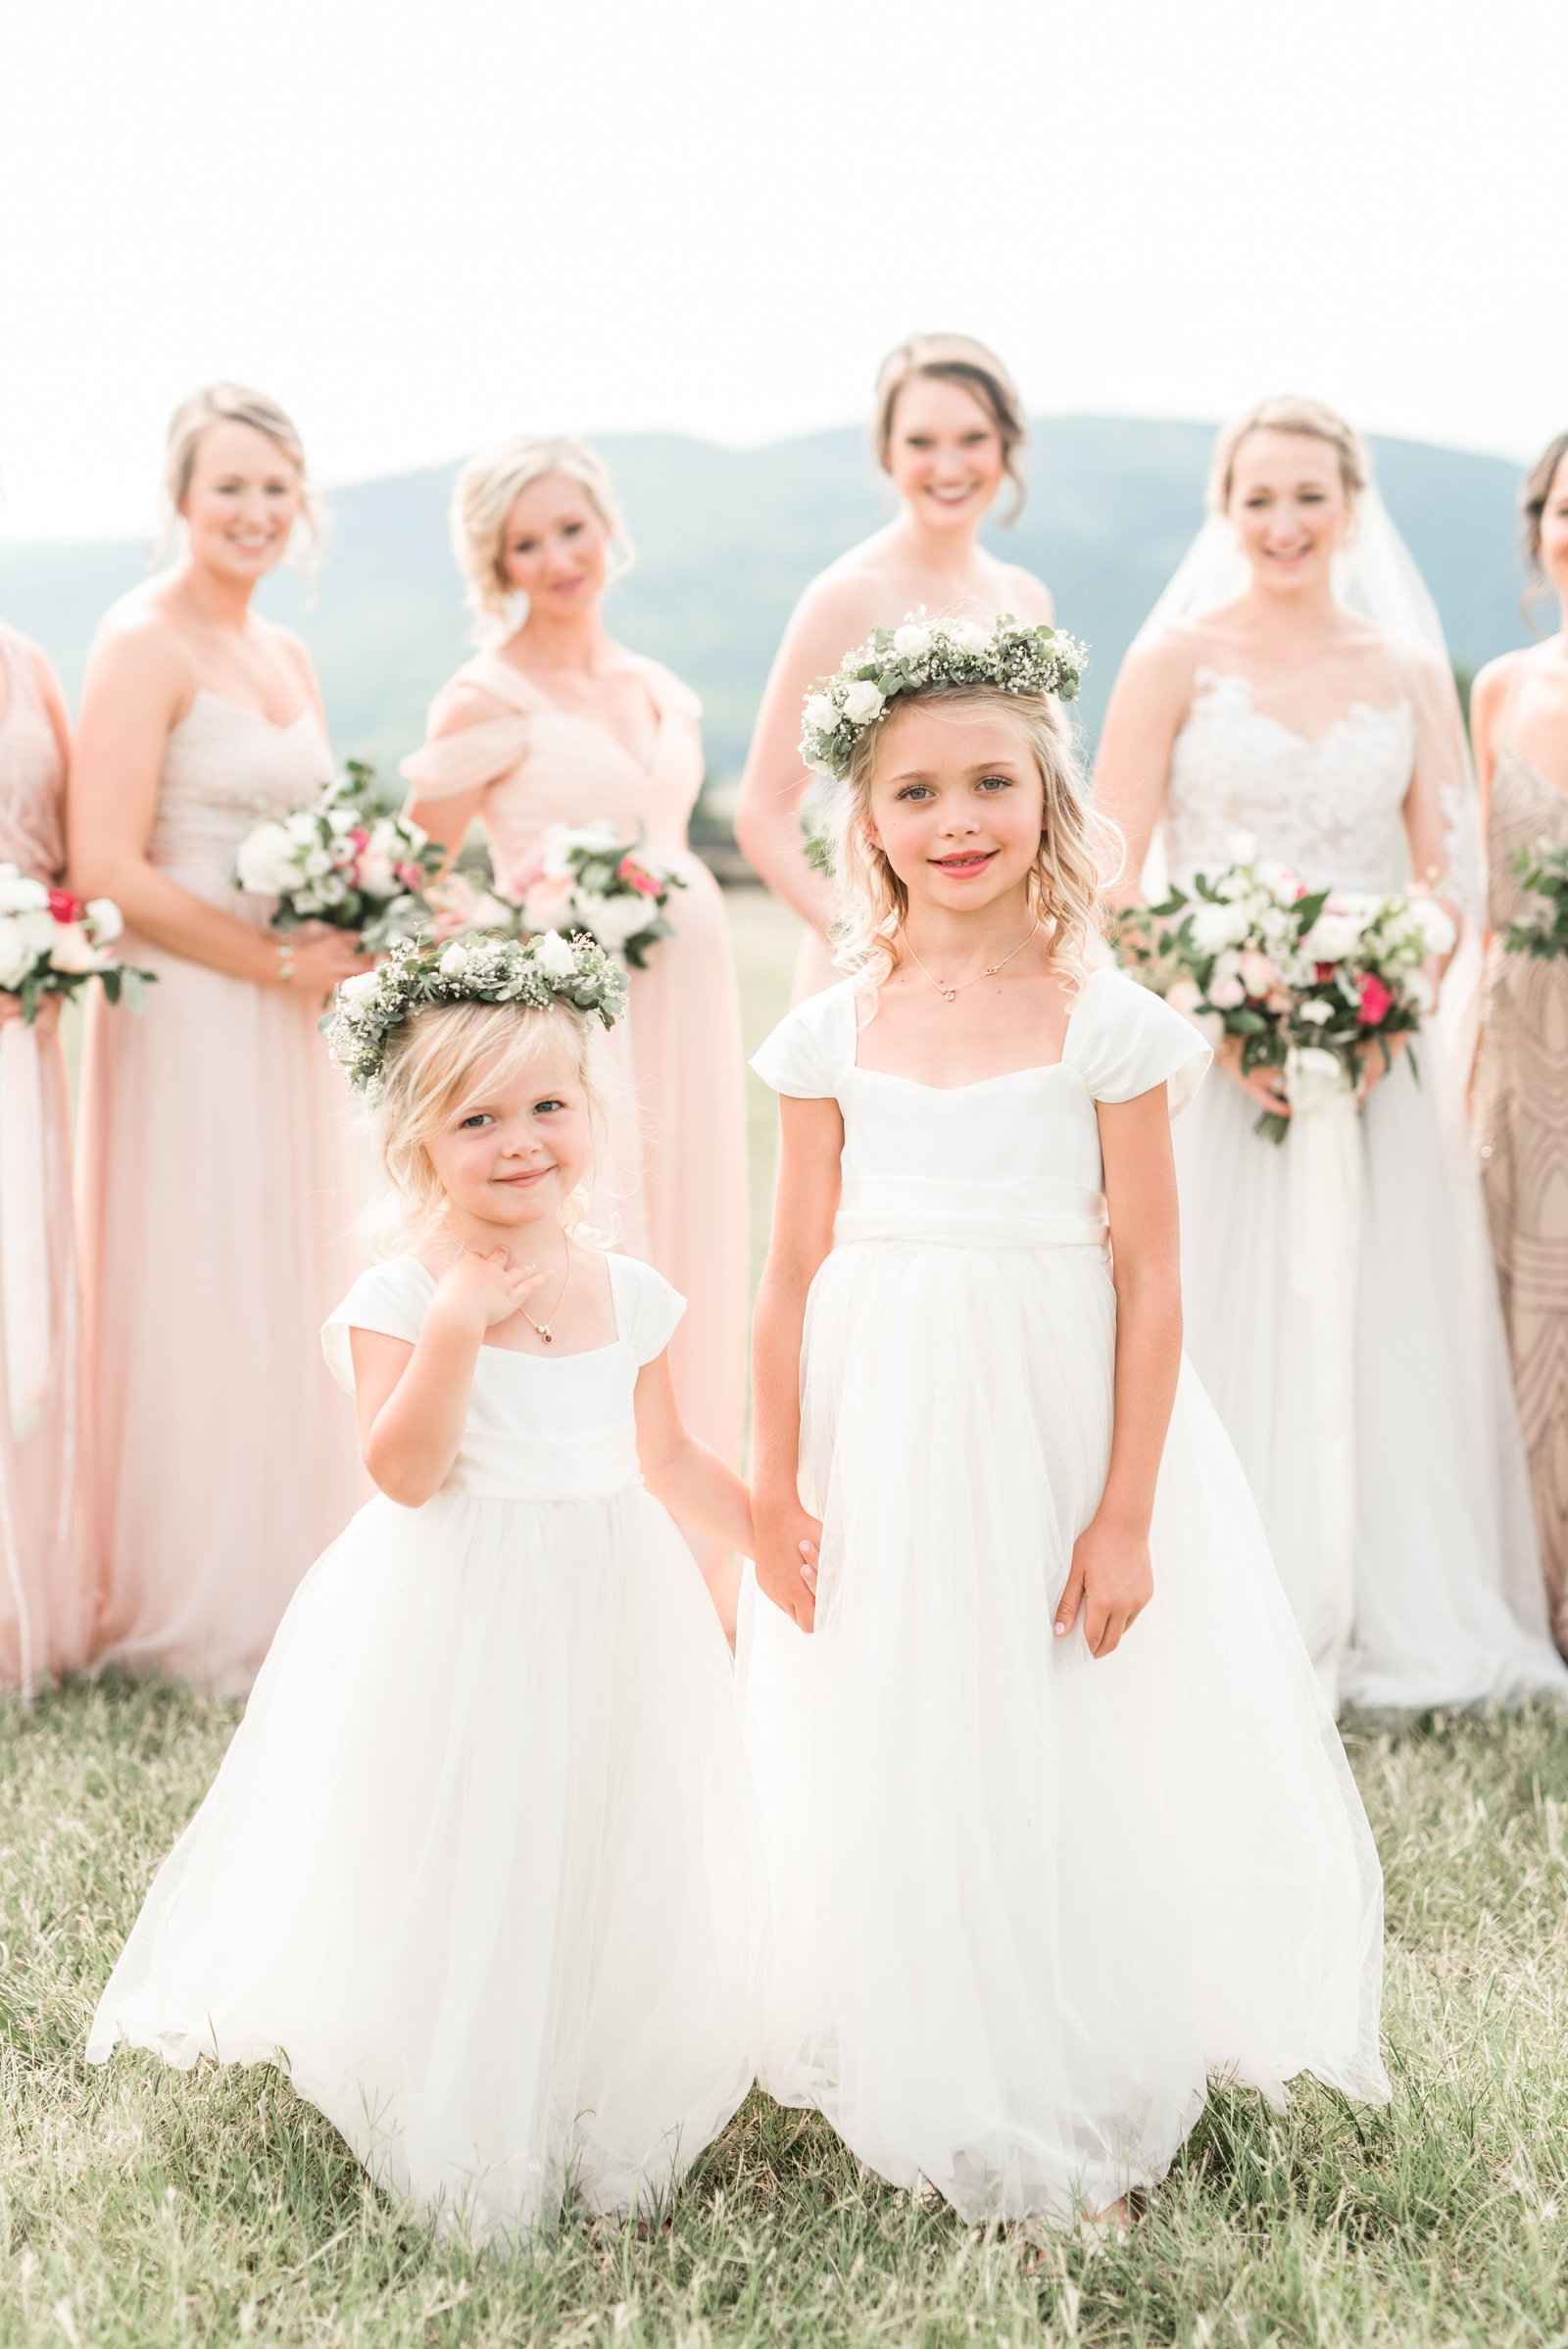 kings-family-vineyard-charlottesville-virginia-blush-wedding-photo176